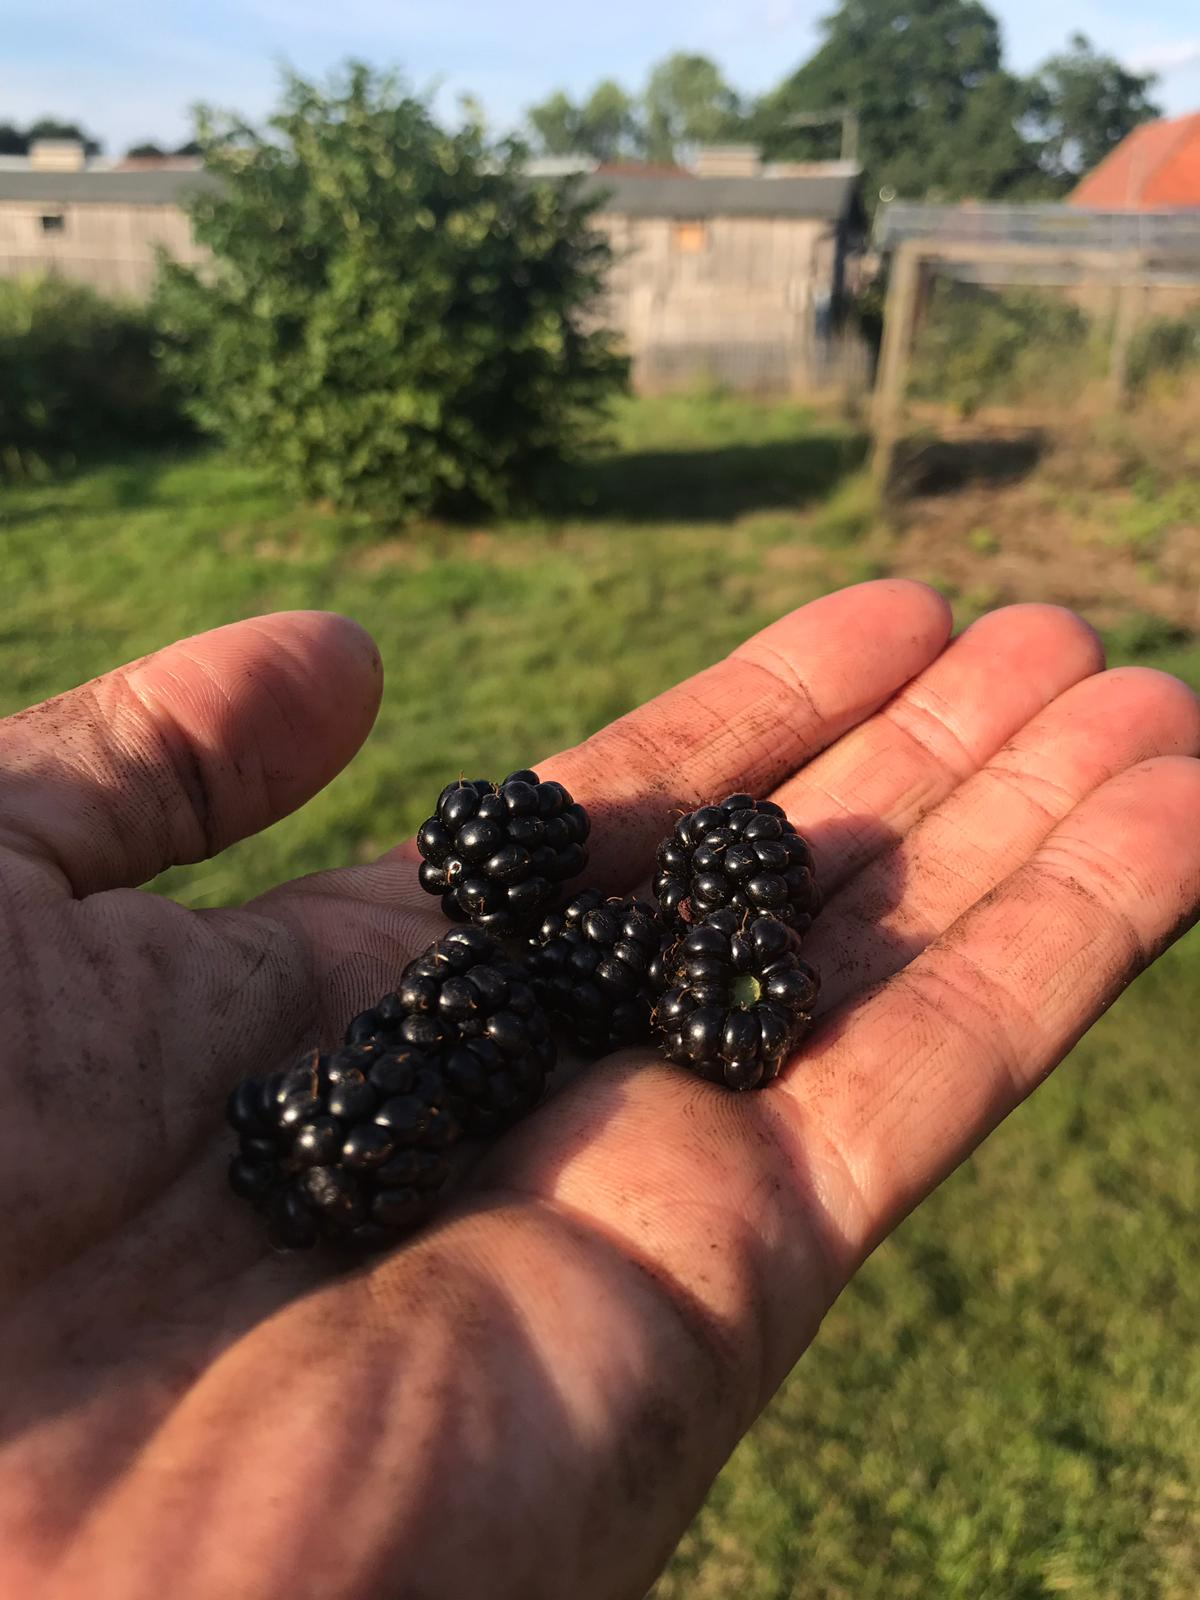 Blackberries from farm hedgerows